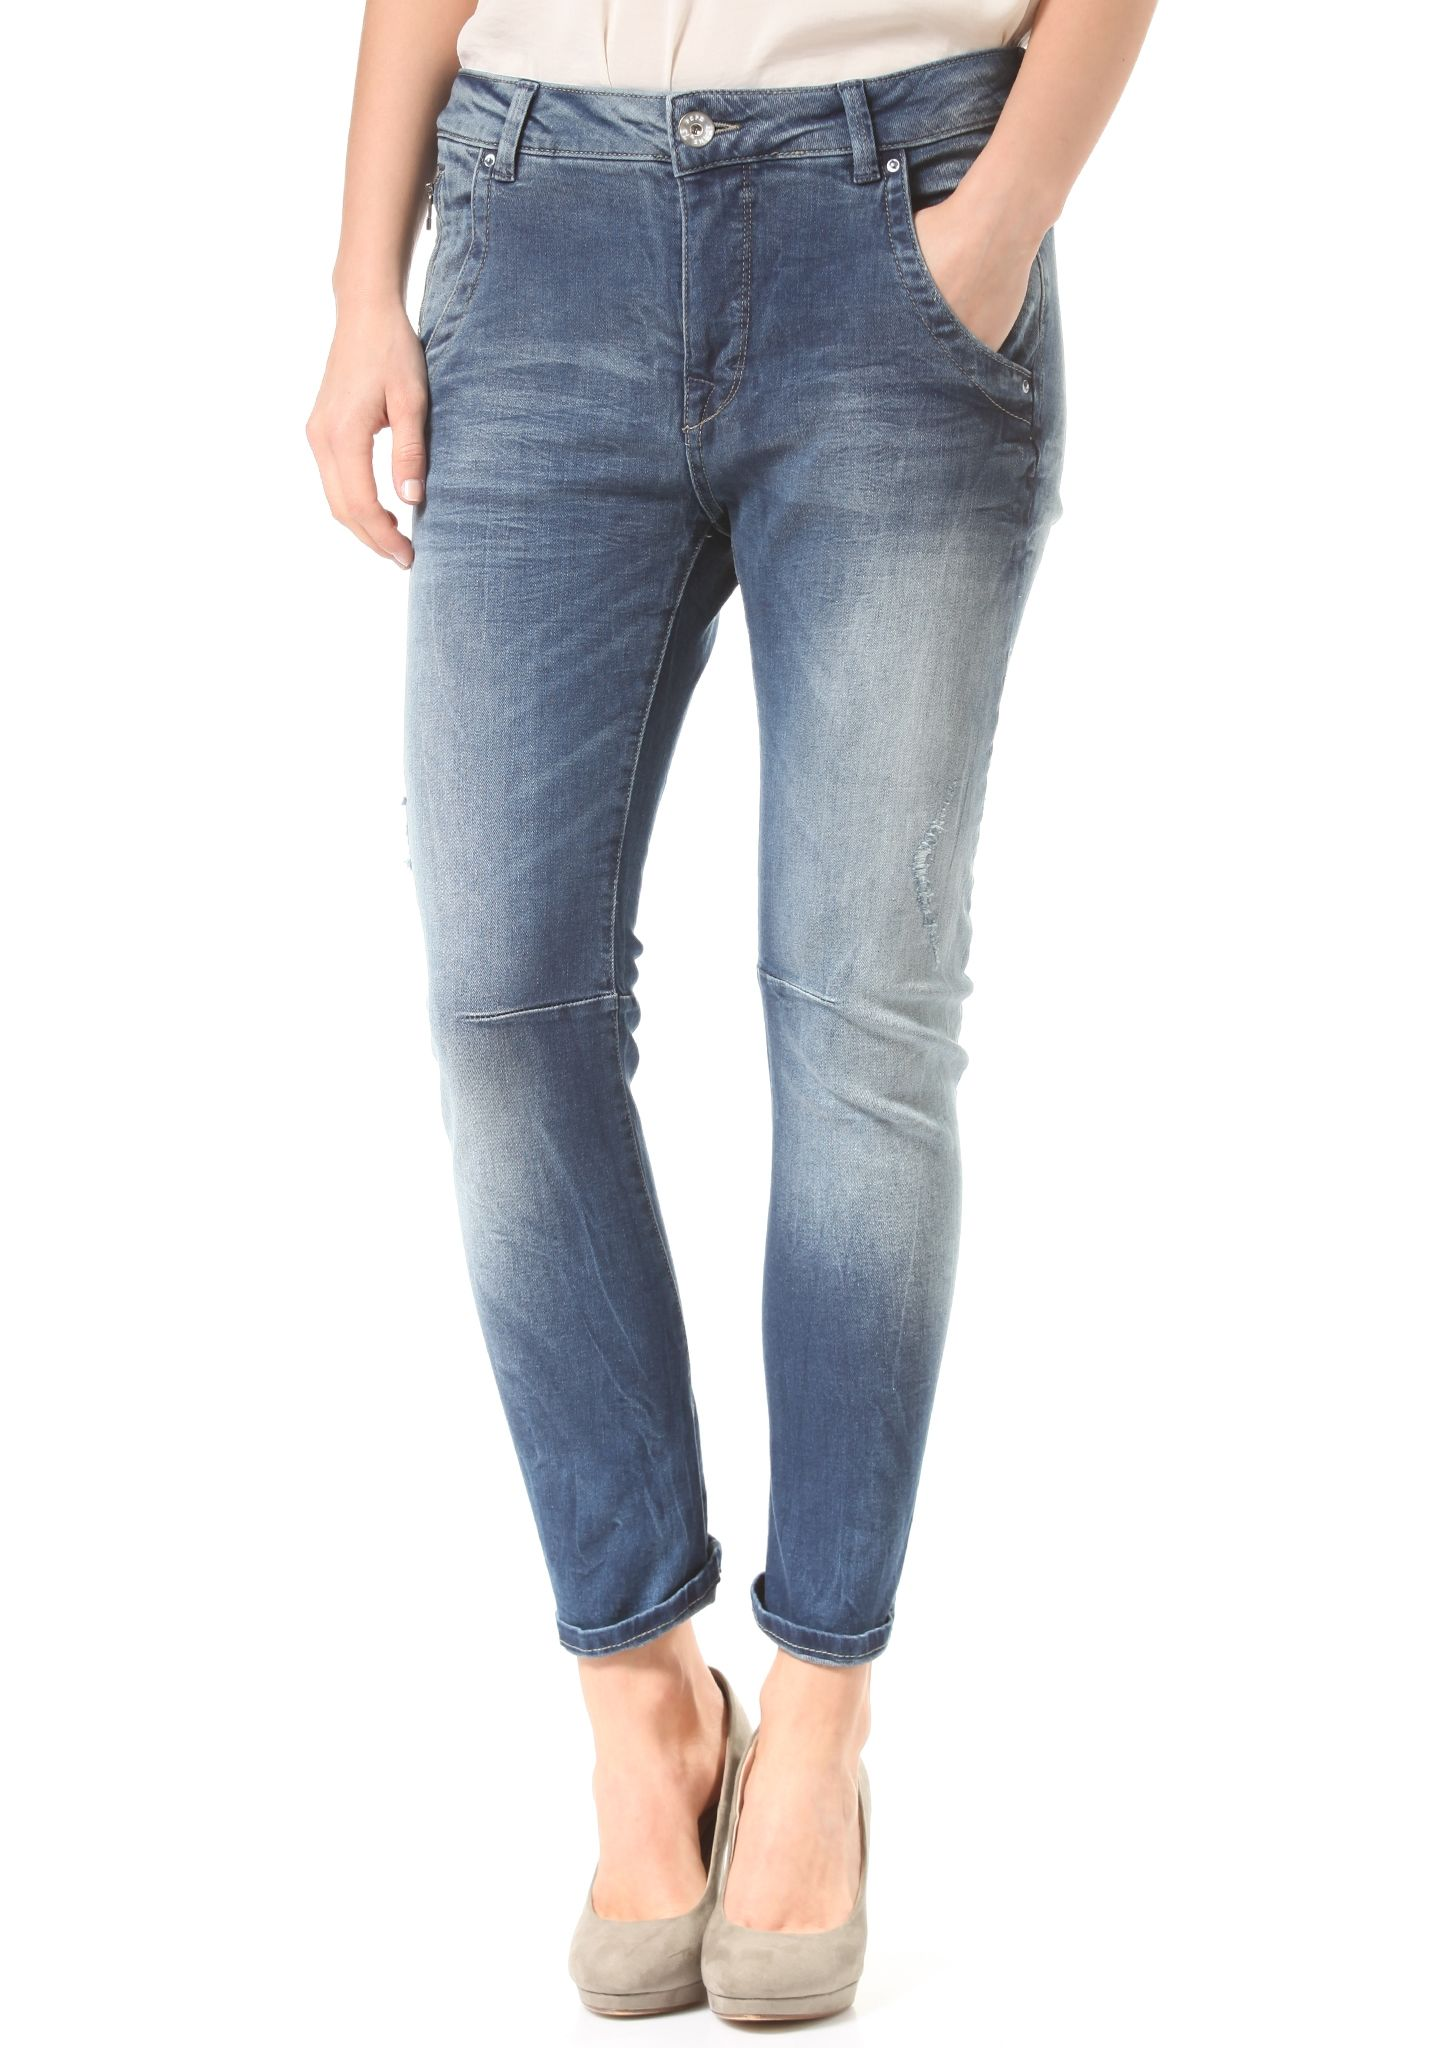 PEPE JEANS FOR WOMEN pepe jeans topsy - denim jeans for women - blue - planet sports AIXYPEB